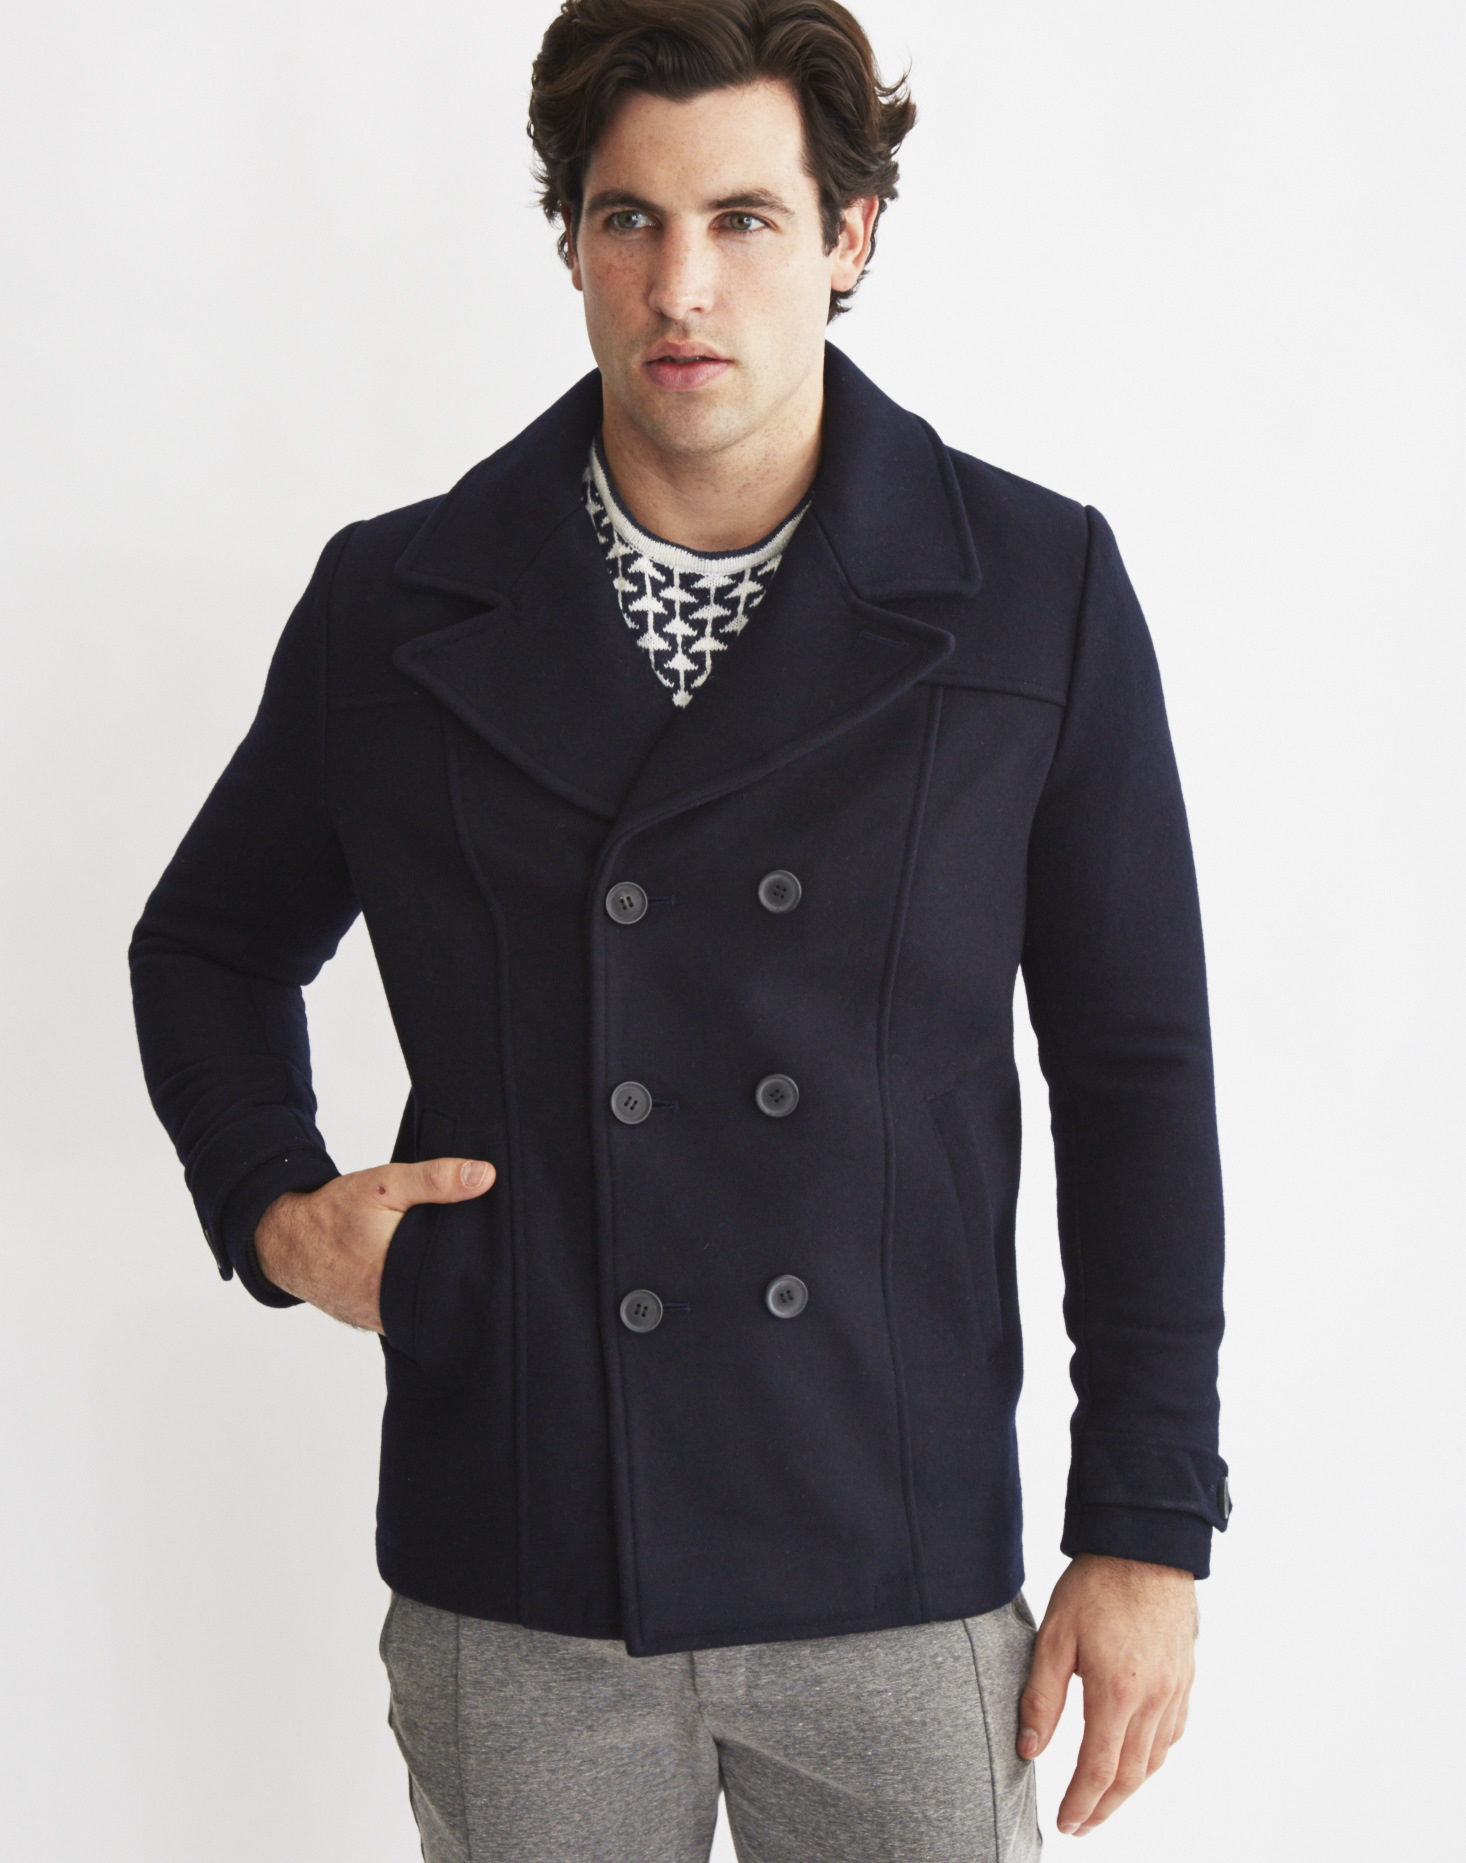 Find great deals on eBay for short pea coat men. Shop with confidence.